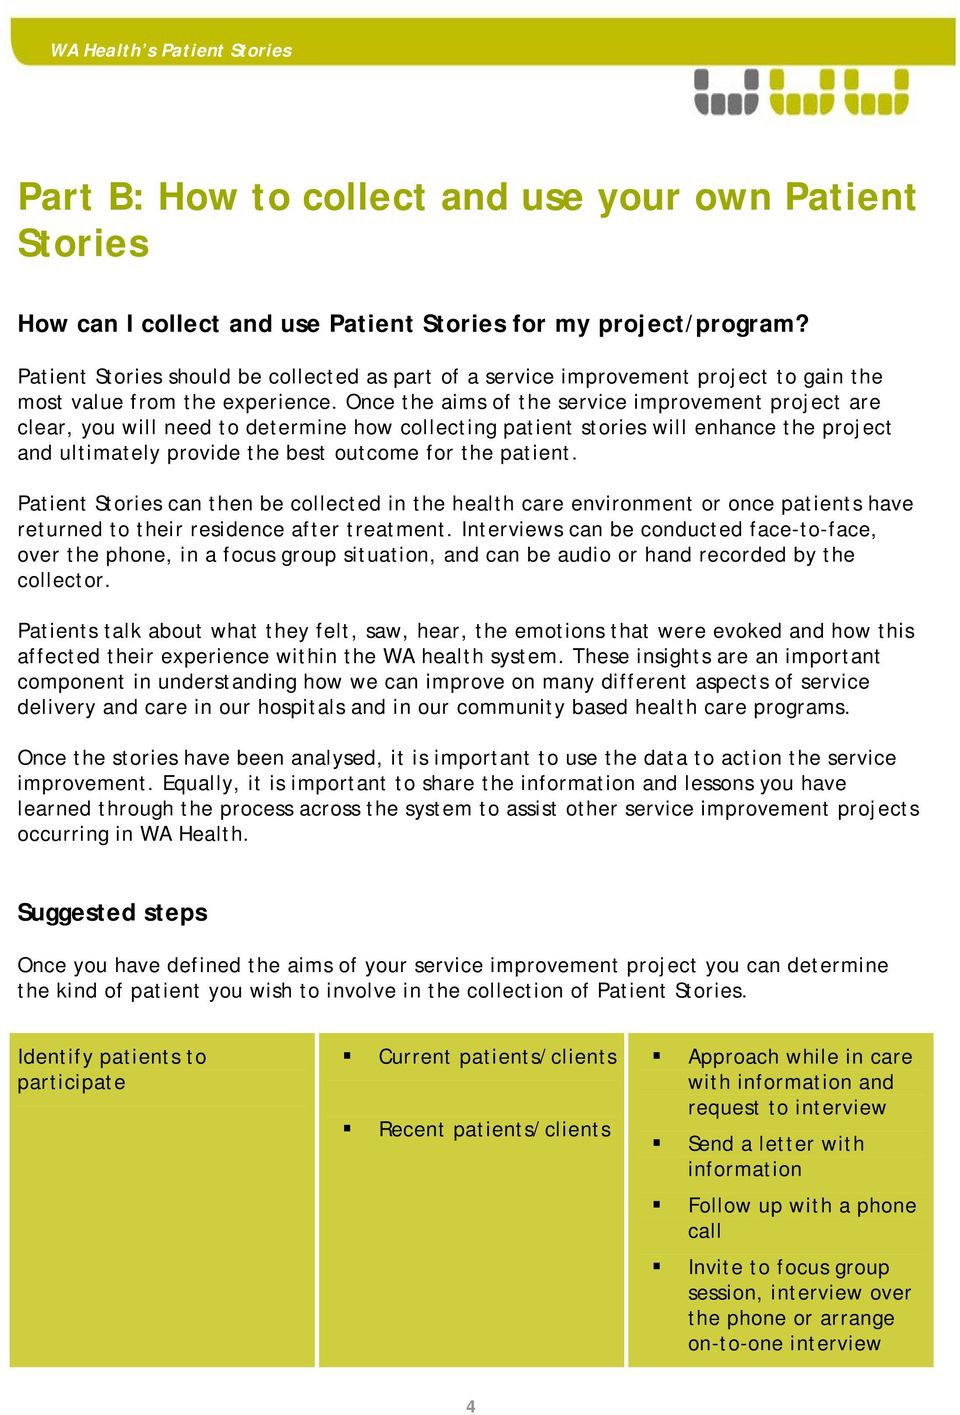 Once the aims of the service improvement project are clear, you will need to determine how collecting patient stories will enhance the project and ultimately provide the best outcome for the patient.